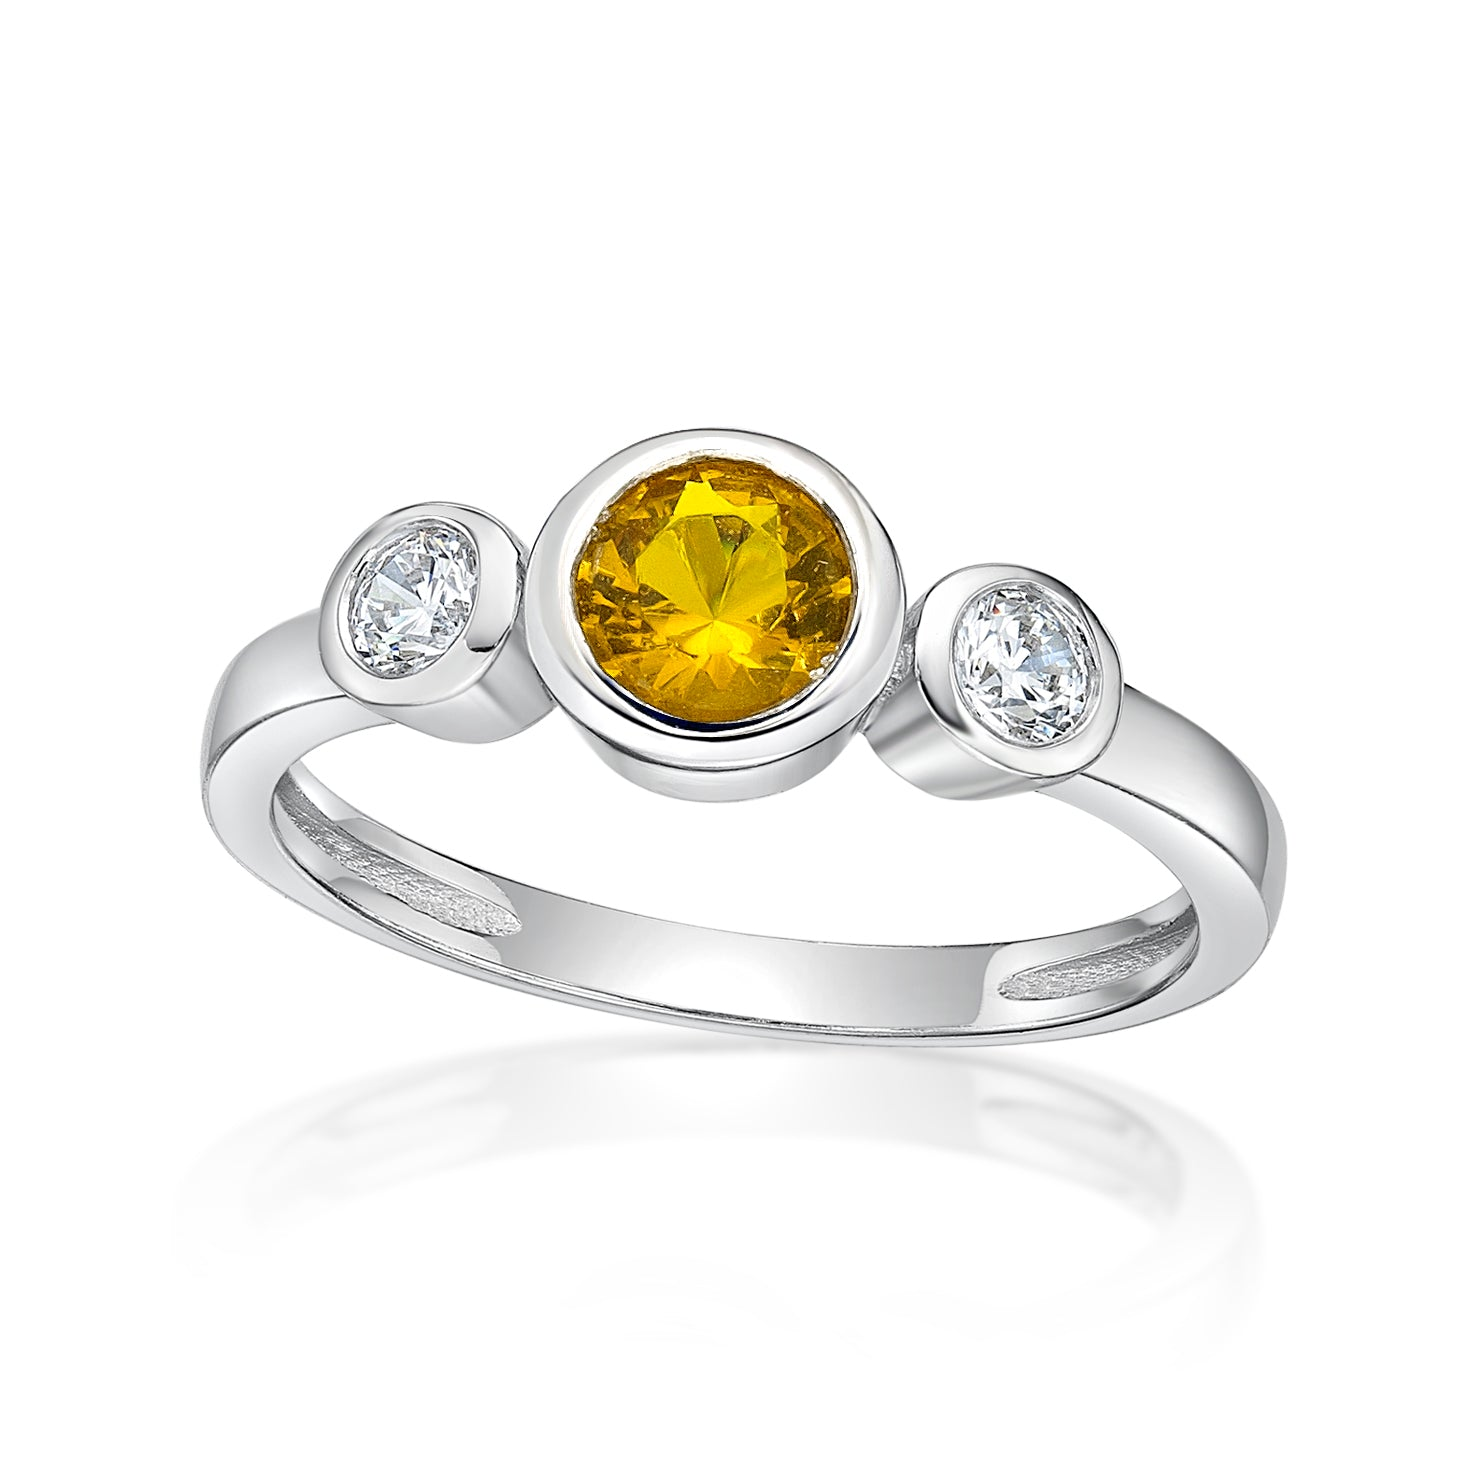 Sterling Silver Ring with Bezel Set CZ November Birthstone